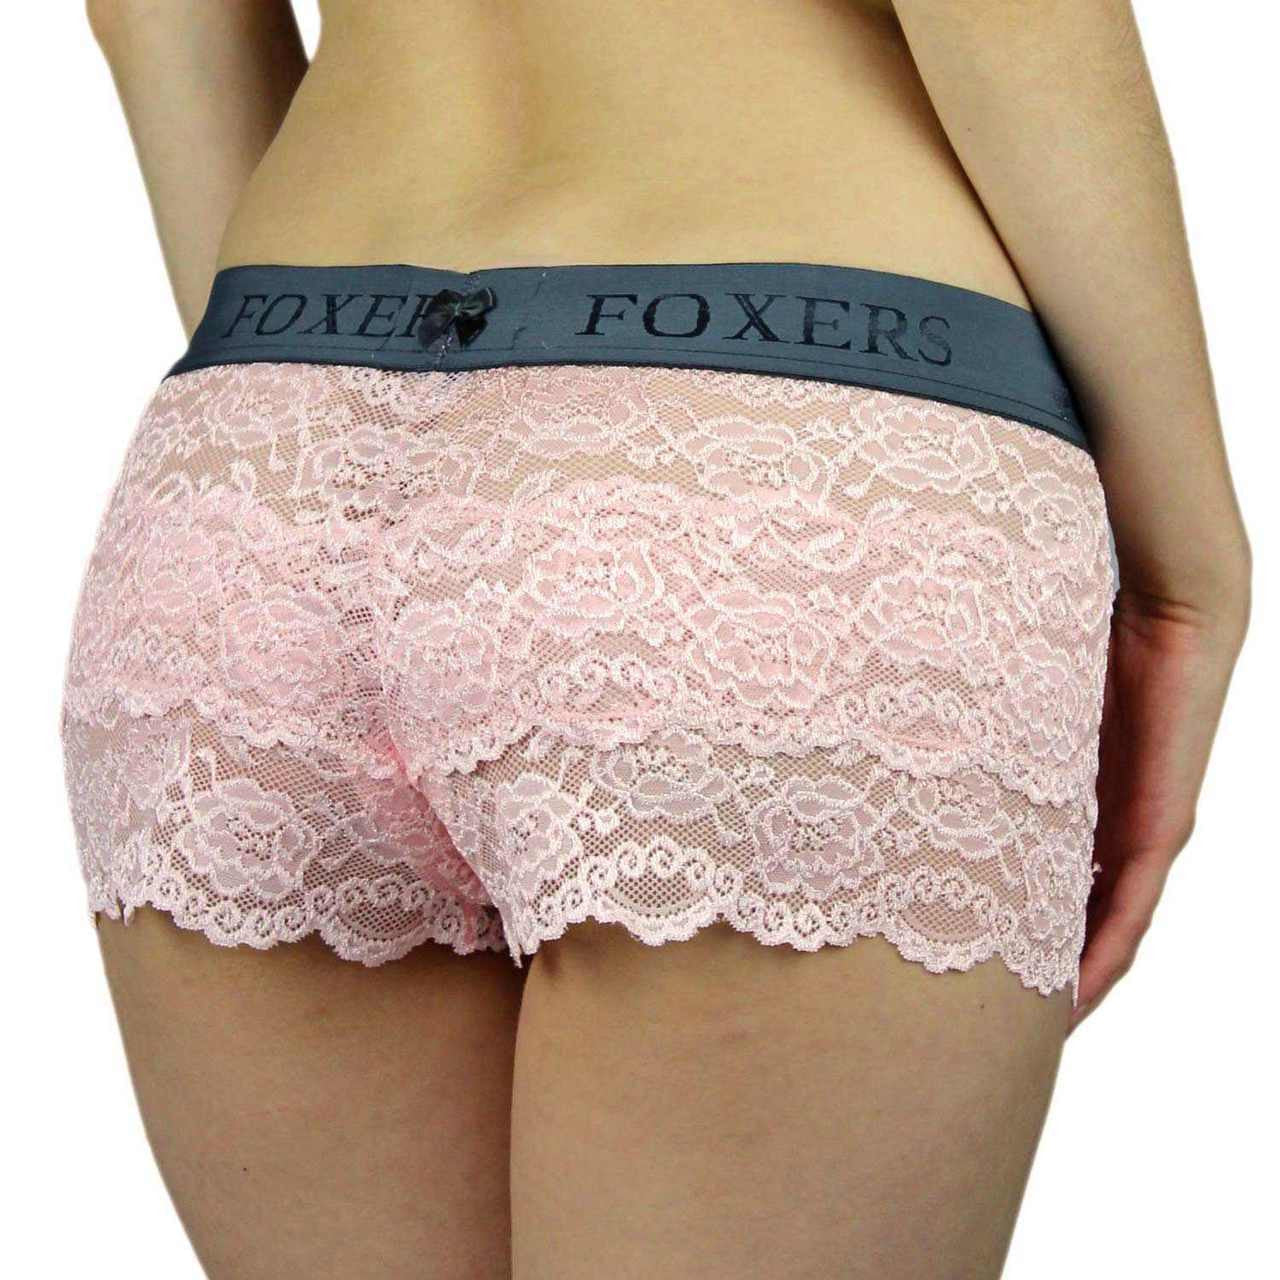 Foxers Lace Boxers with Foxers Logo Band - Knickers & Pearls Boutique - 4